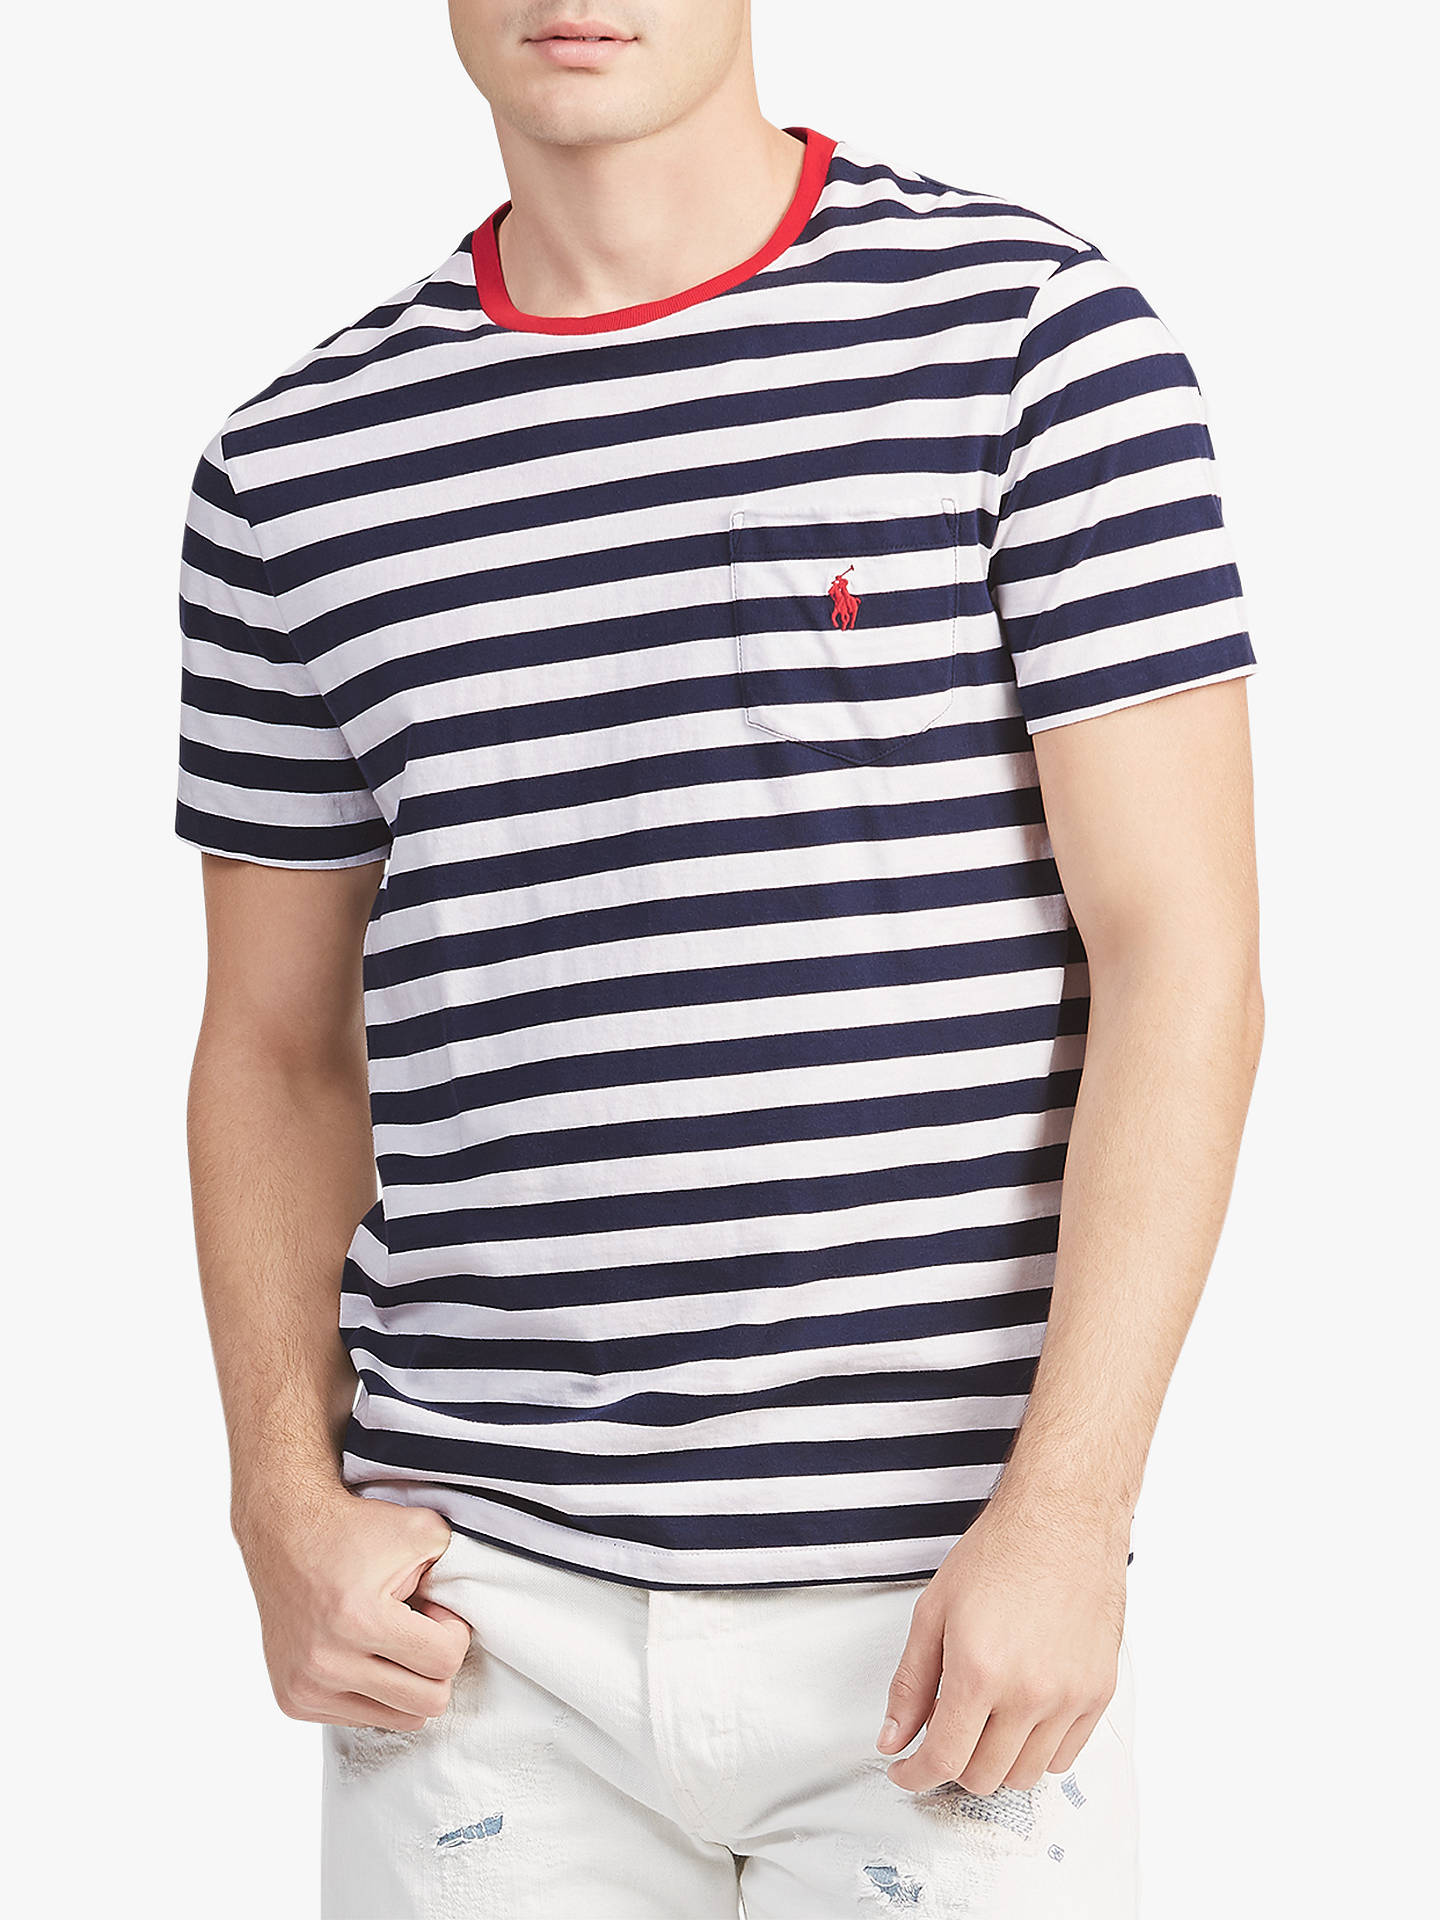 e6ef4920 ... Buy Polo Ralph Lauren Stripe Pocket Short Sleeve T-Shirt, Navy/White,  ...